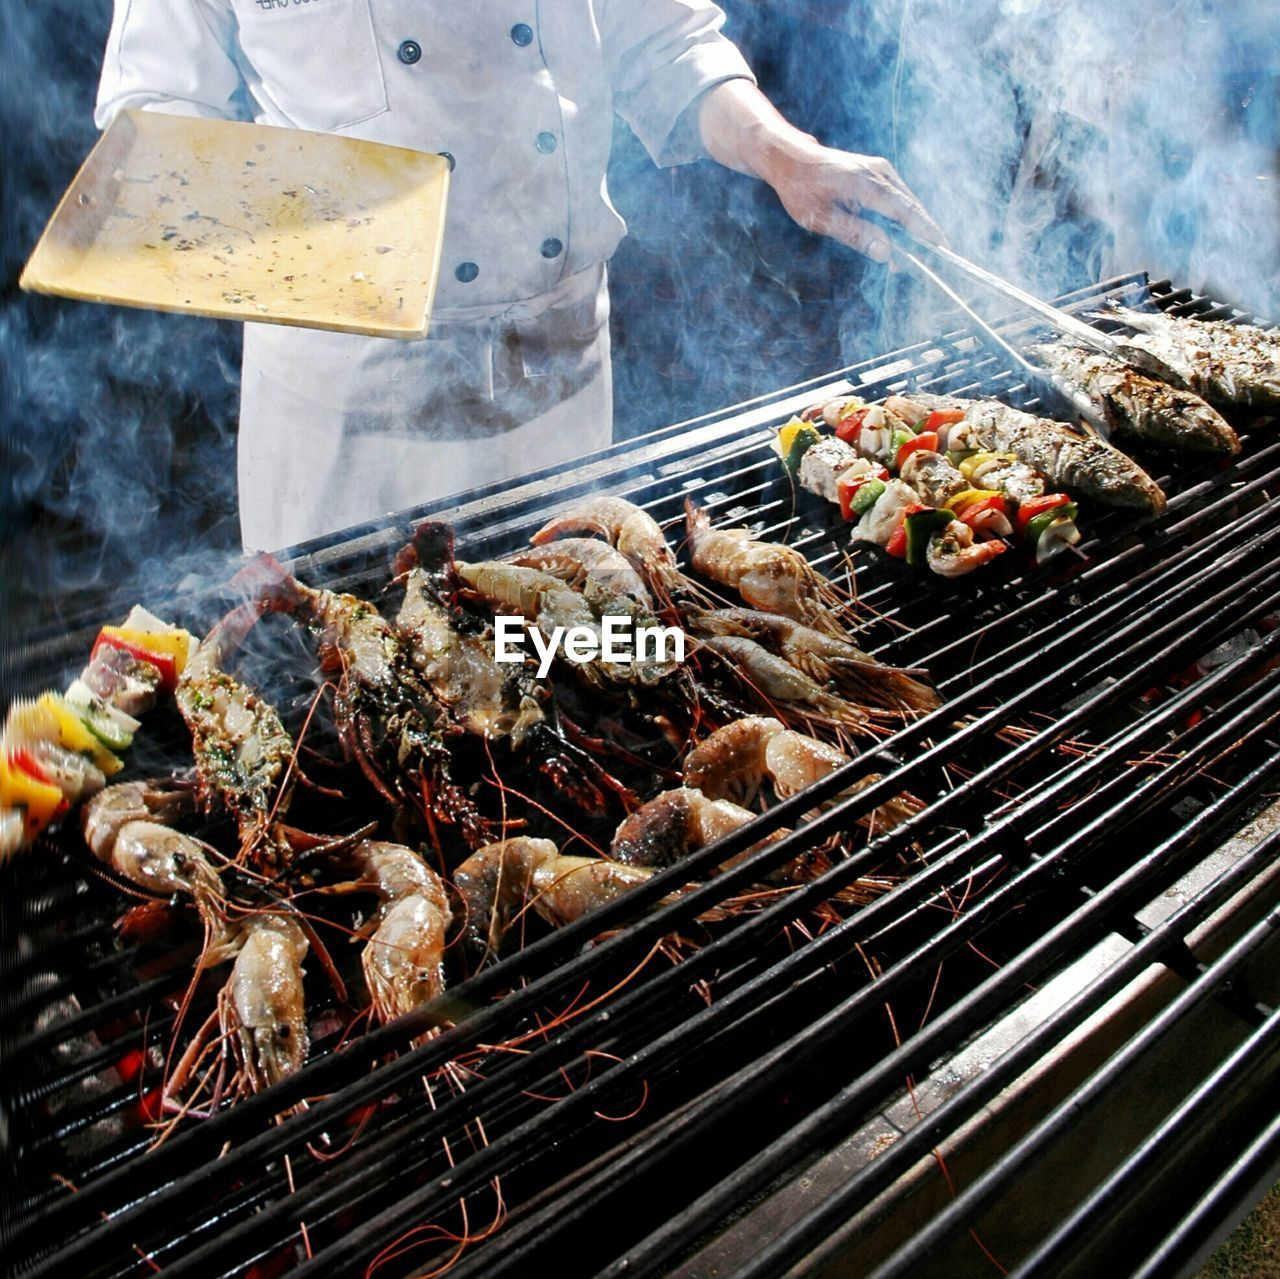 barbecue grill, grilled, barbecue, food and drink, smoke - physical structure, preparation, food, heat - temperature, coal, freshness, seafood, preparing food, outdoors, one person, healthy eating, skewer, meat, serving tongs, squid, day, kebab, midsection, human body part, prawn, men, real people, cooked, char-grilled, close-up, one man only, human hand, people, adult, ready-to-eat